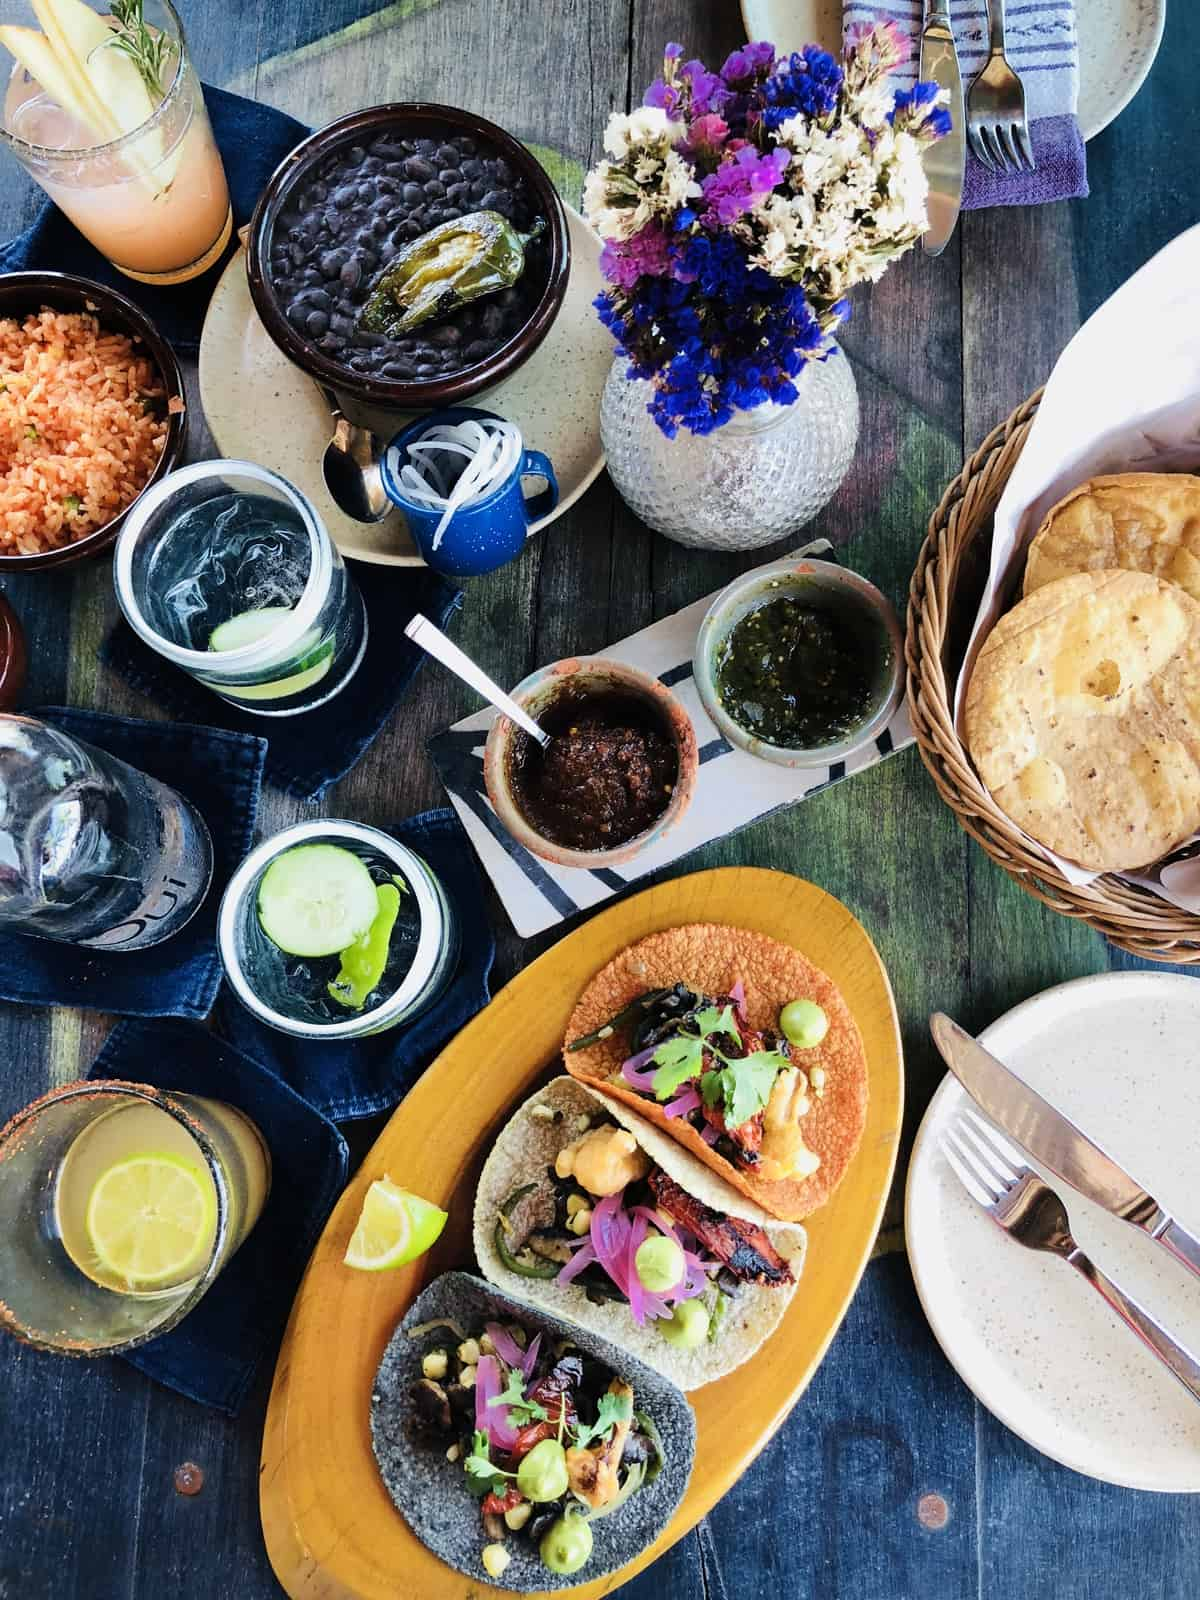 Top down view of drinks, sauces and tacos on a table.